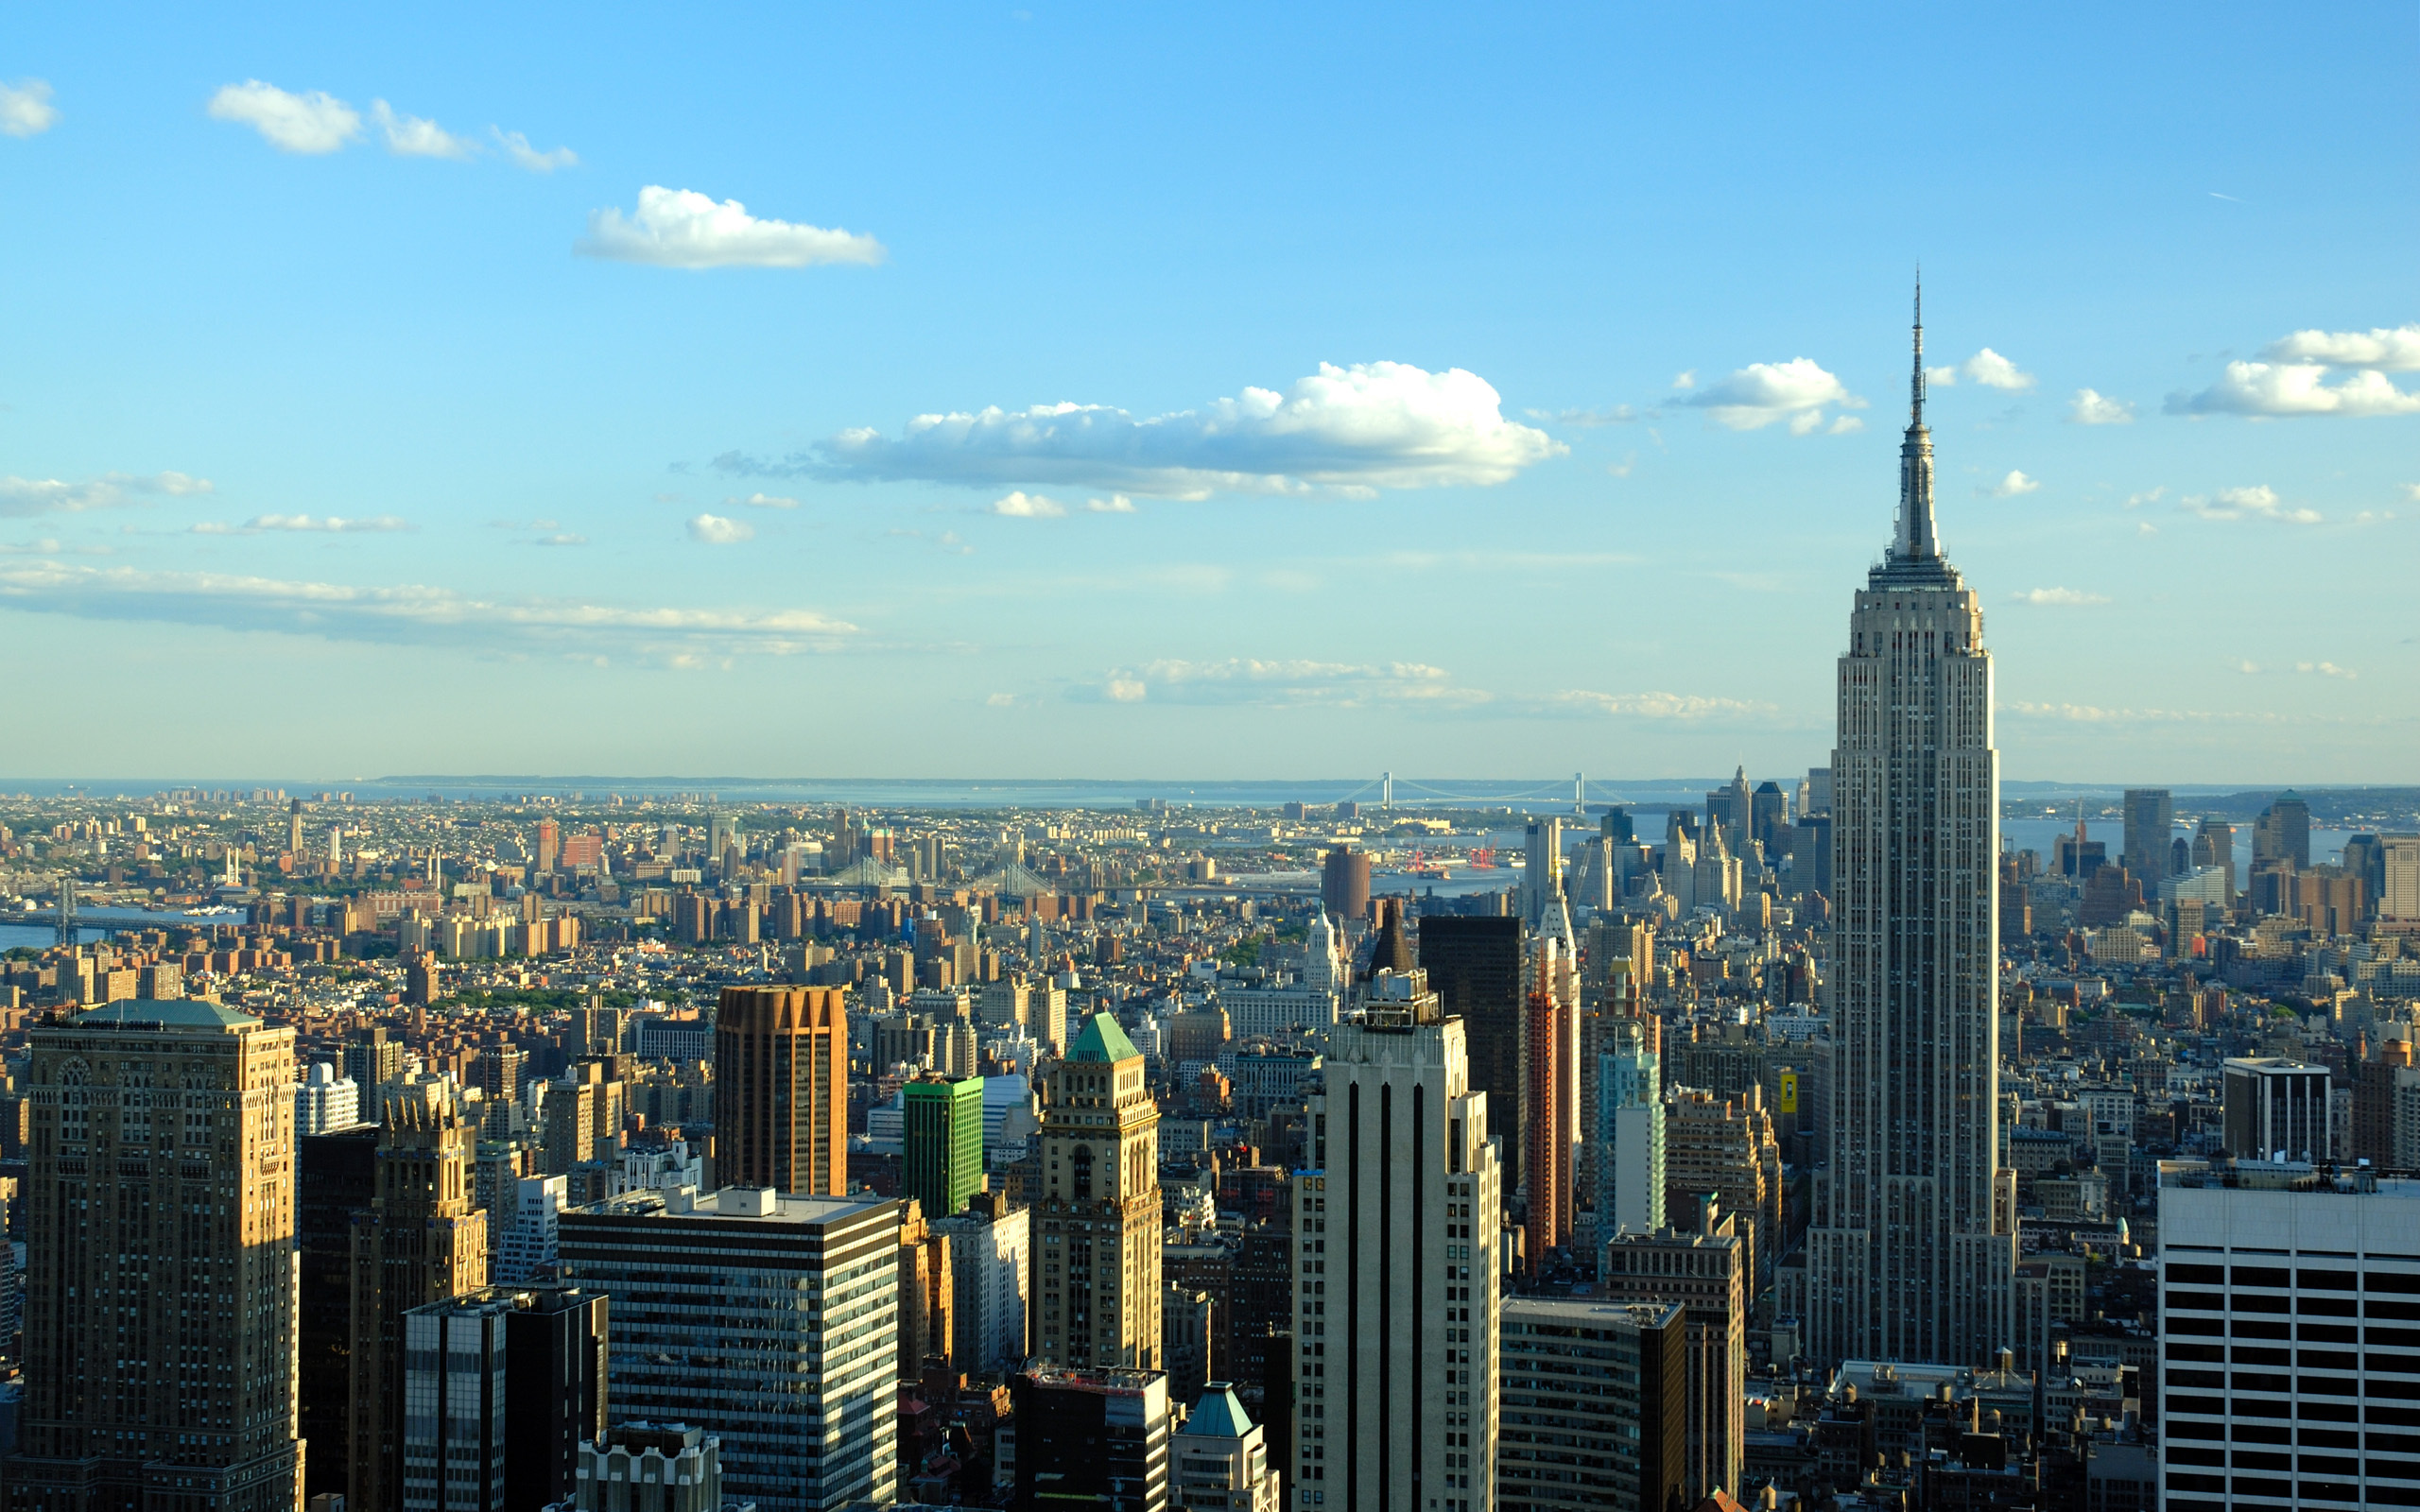 New York City Skyline Desktop Background in High Resolution at City 2560x1600